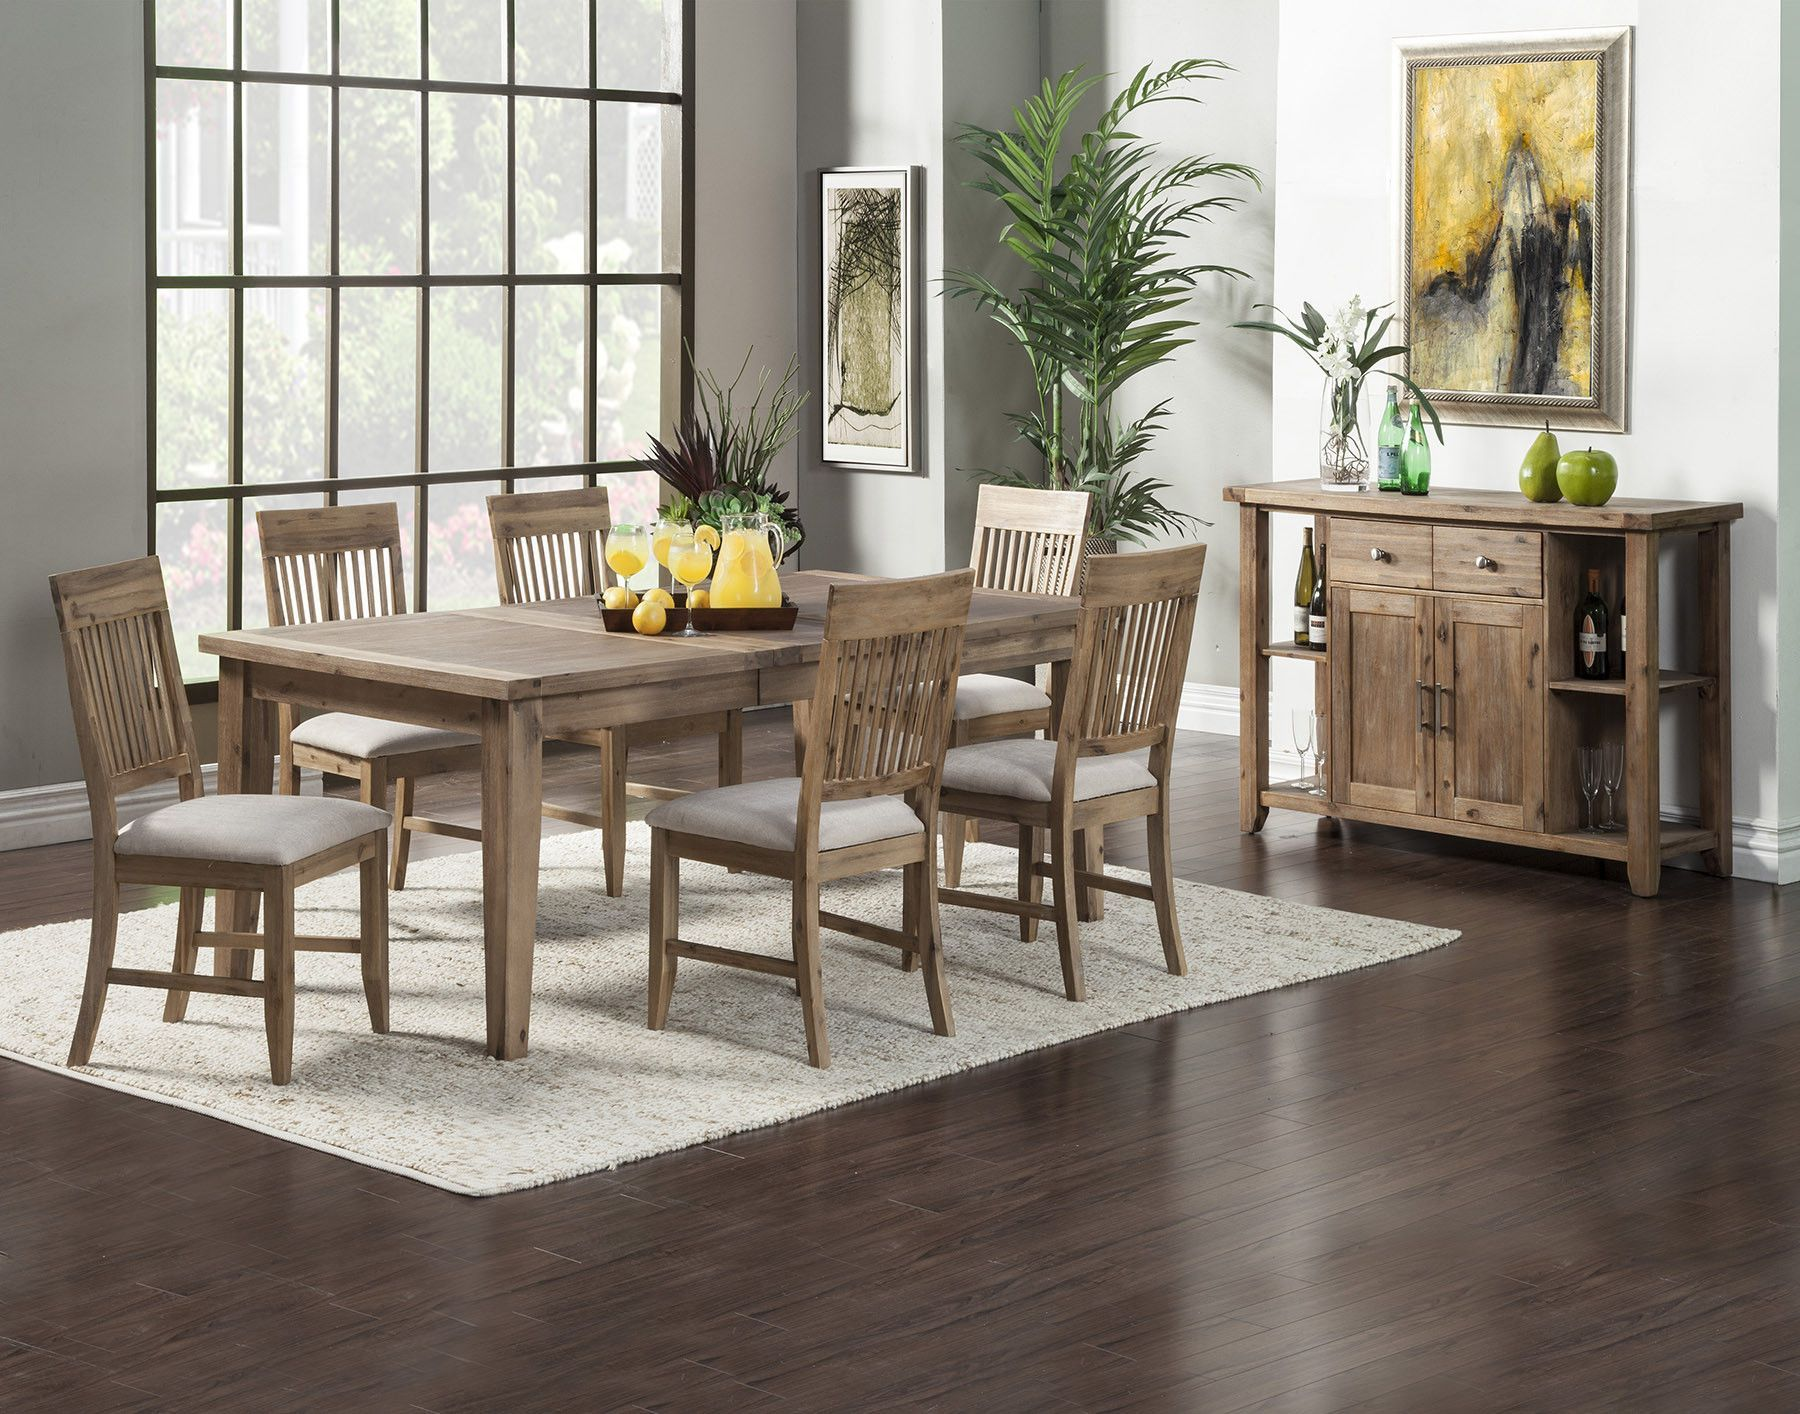 Alpine Aspen Extension Dining Table With Butterfly Leaf Butterfly Leaf Iron Brush Antique Natural Finish Ac Alpine Furniture Dining Table In Kitchen Furniture